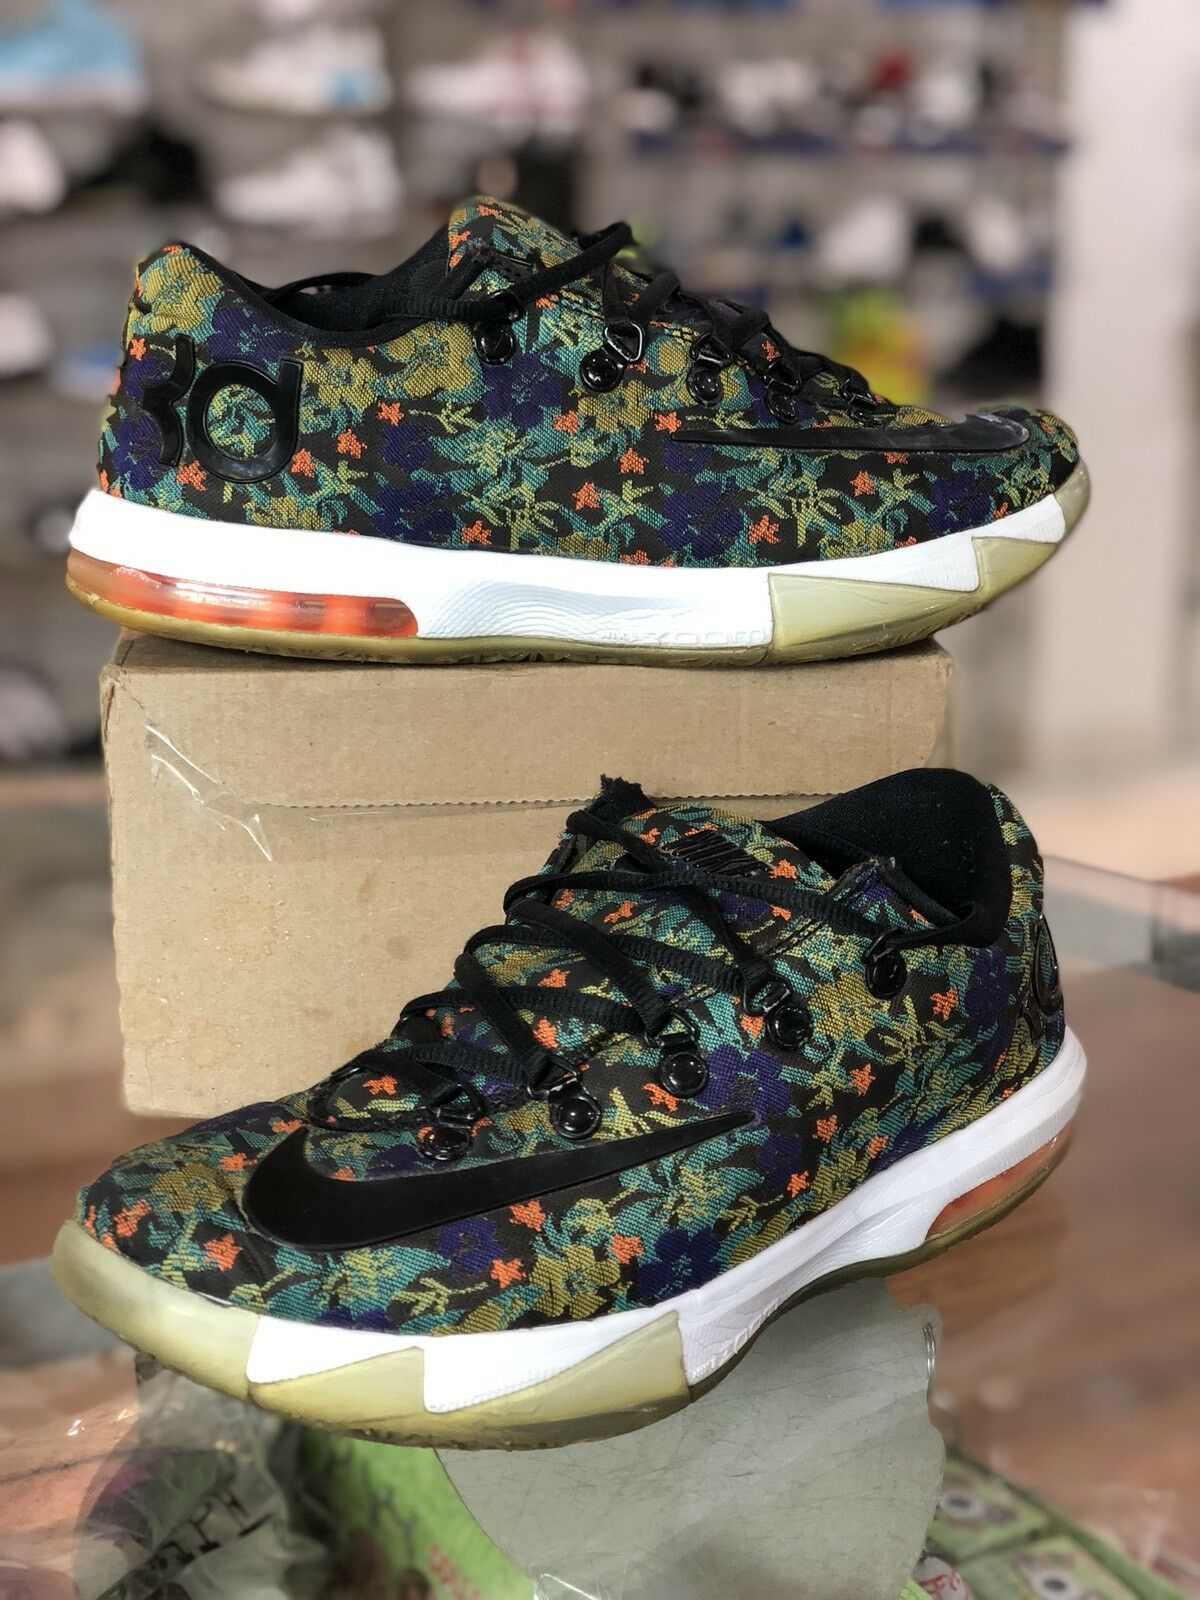 Nike KD VI 6 Floral EXT QS Kevin Durant Basketball 652120-900 Size 8